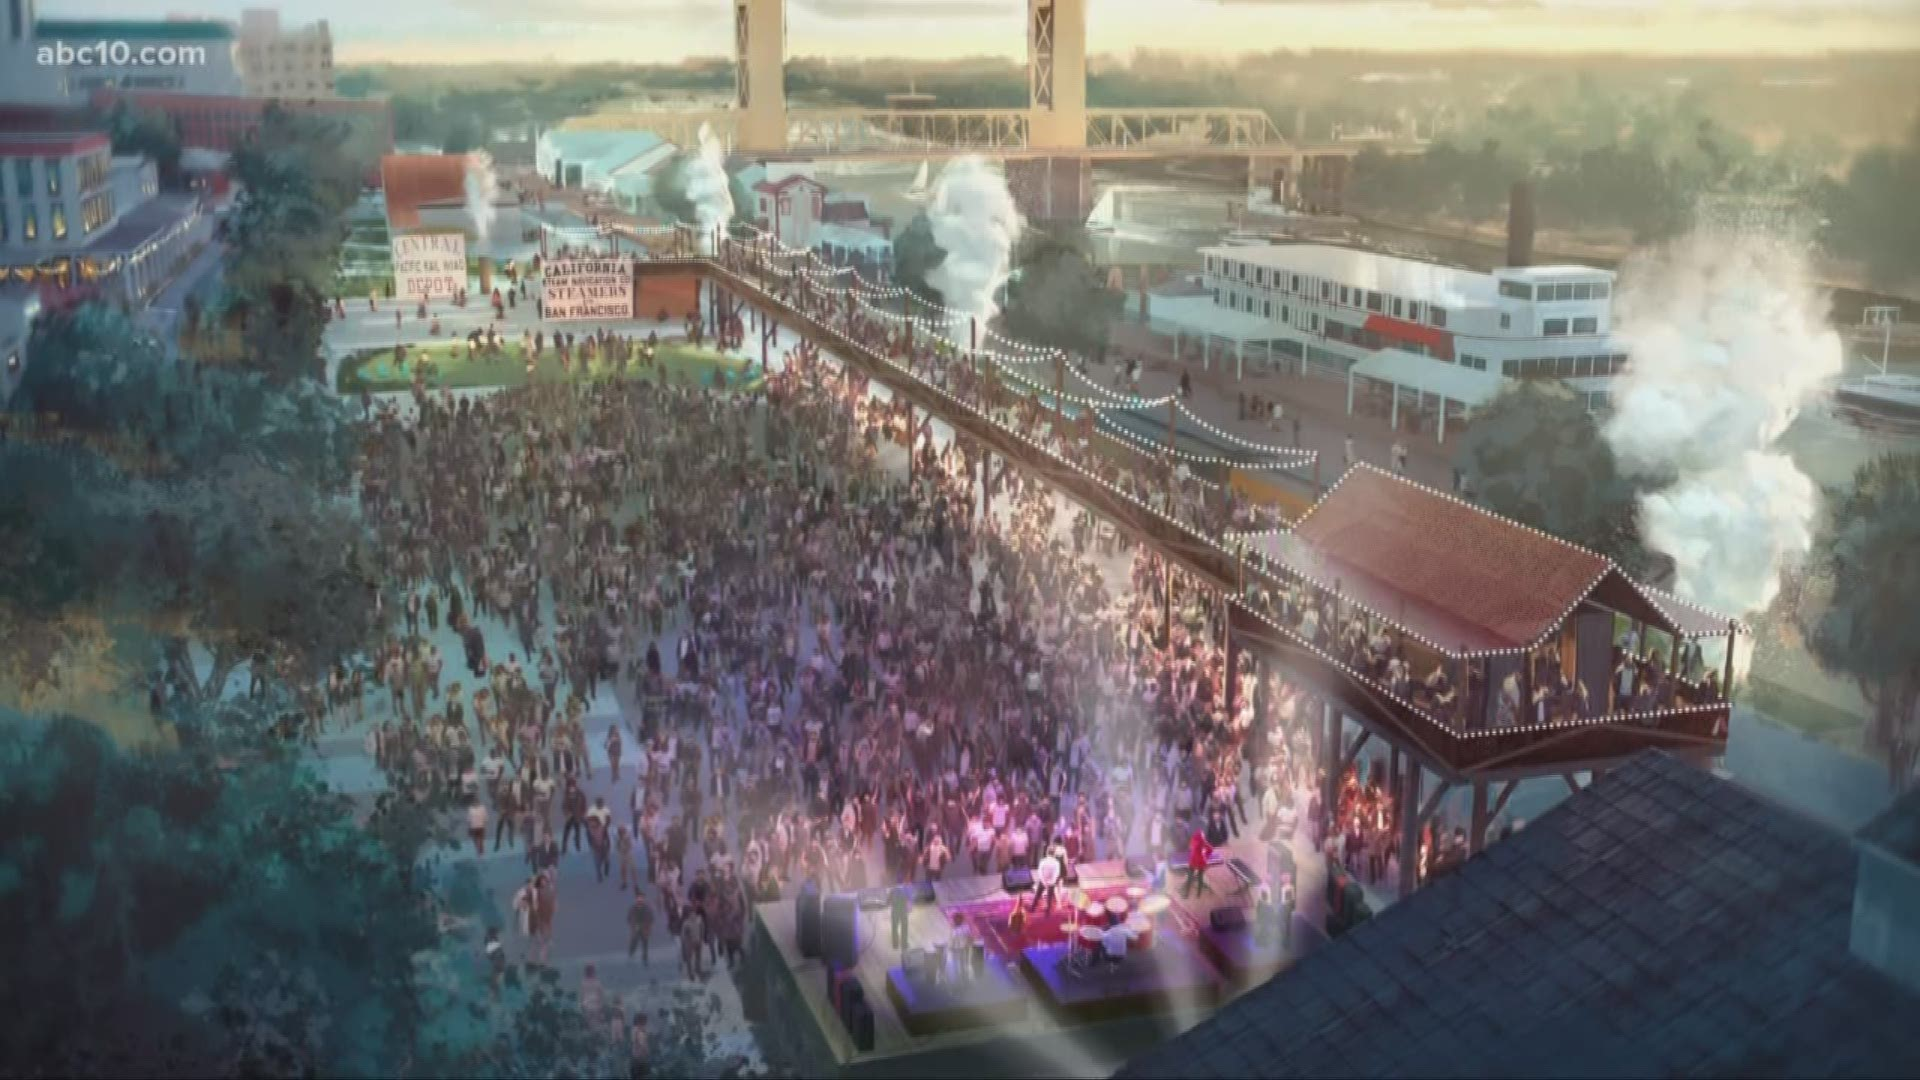 Old Sacramento Ca Halloween 2020 Sacramento approves $47 million Old Sacramento Waterfront project